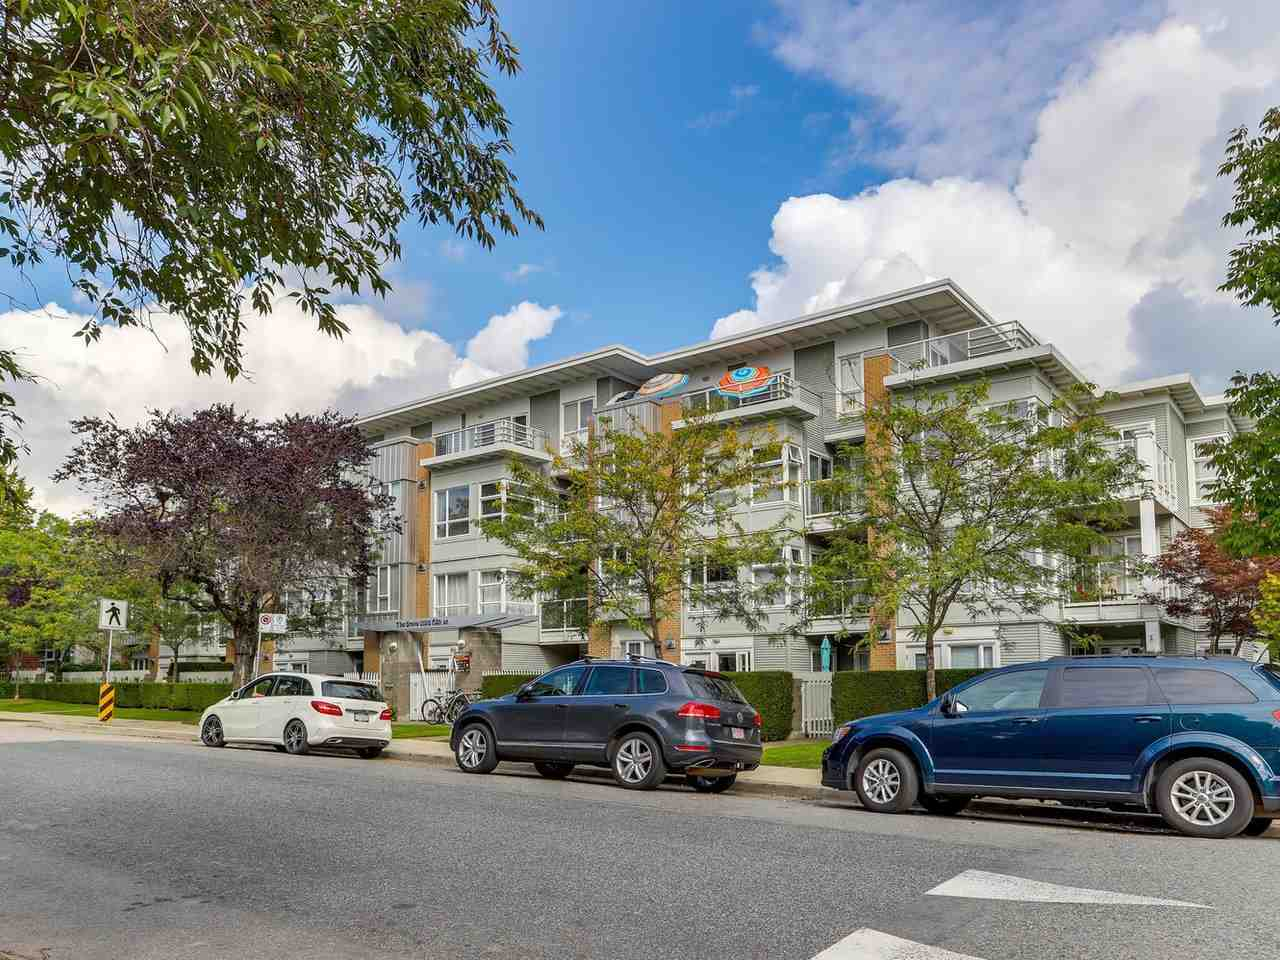 2 Bedroom + 2 Bathroom spacious apartment in a very popular building within walking distance to Oakridge Centre and the Canada Line.  The suite is over 1000 sq.ft. with 2 large bedrooms on separate sides of the apartment.  Bonus flex room offers ability to also have a home office.  Oversized open kitchen. Bright apartment with large windows, 9' ceiling, gas fireplace, open balcony, ensuite with soaker tub and separate shower.  East facing. Building is directly across for Tisdall Park.  Short walk to Jamieson Elementary, Langara College.  Eric Hamber Secondary.  Immediate possession is possible. Easy to show.